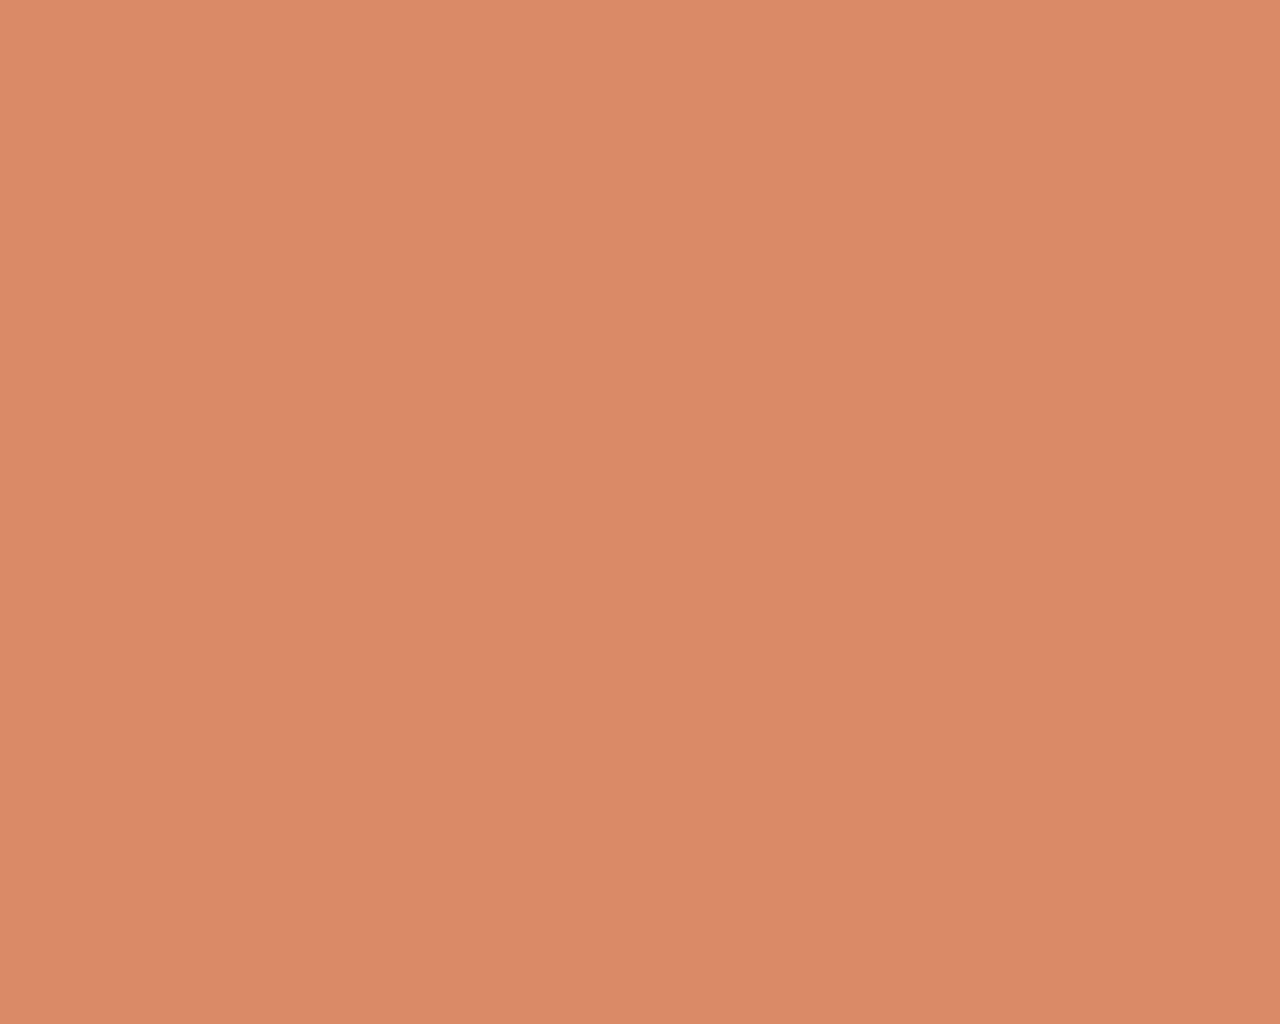 1280x1024 Pale Copper Solid Color Background